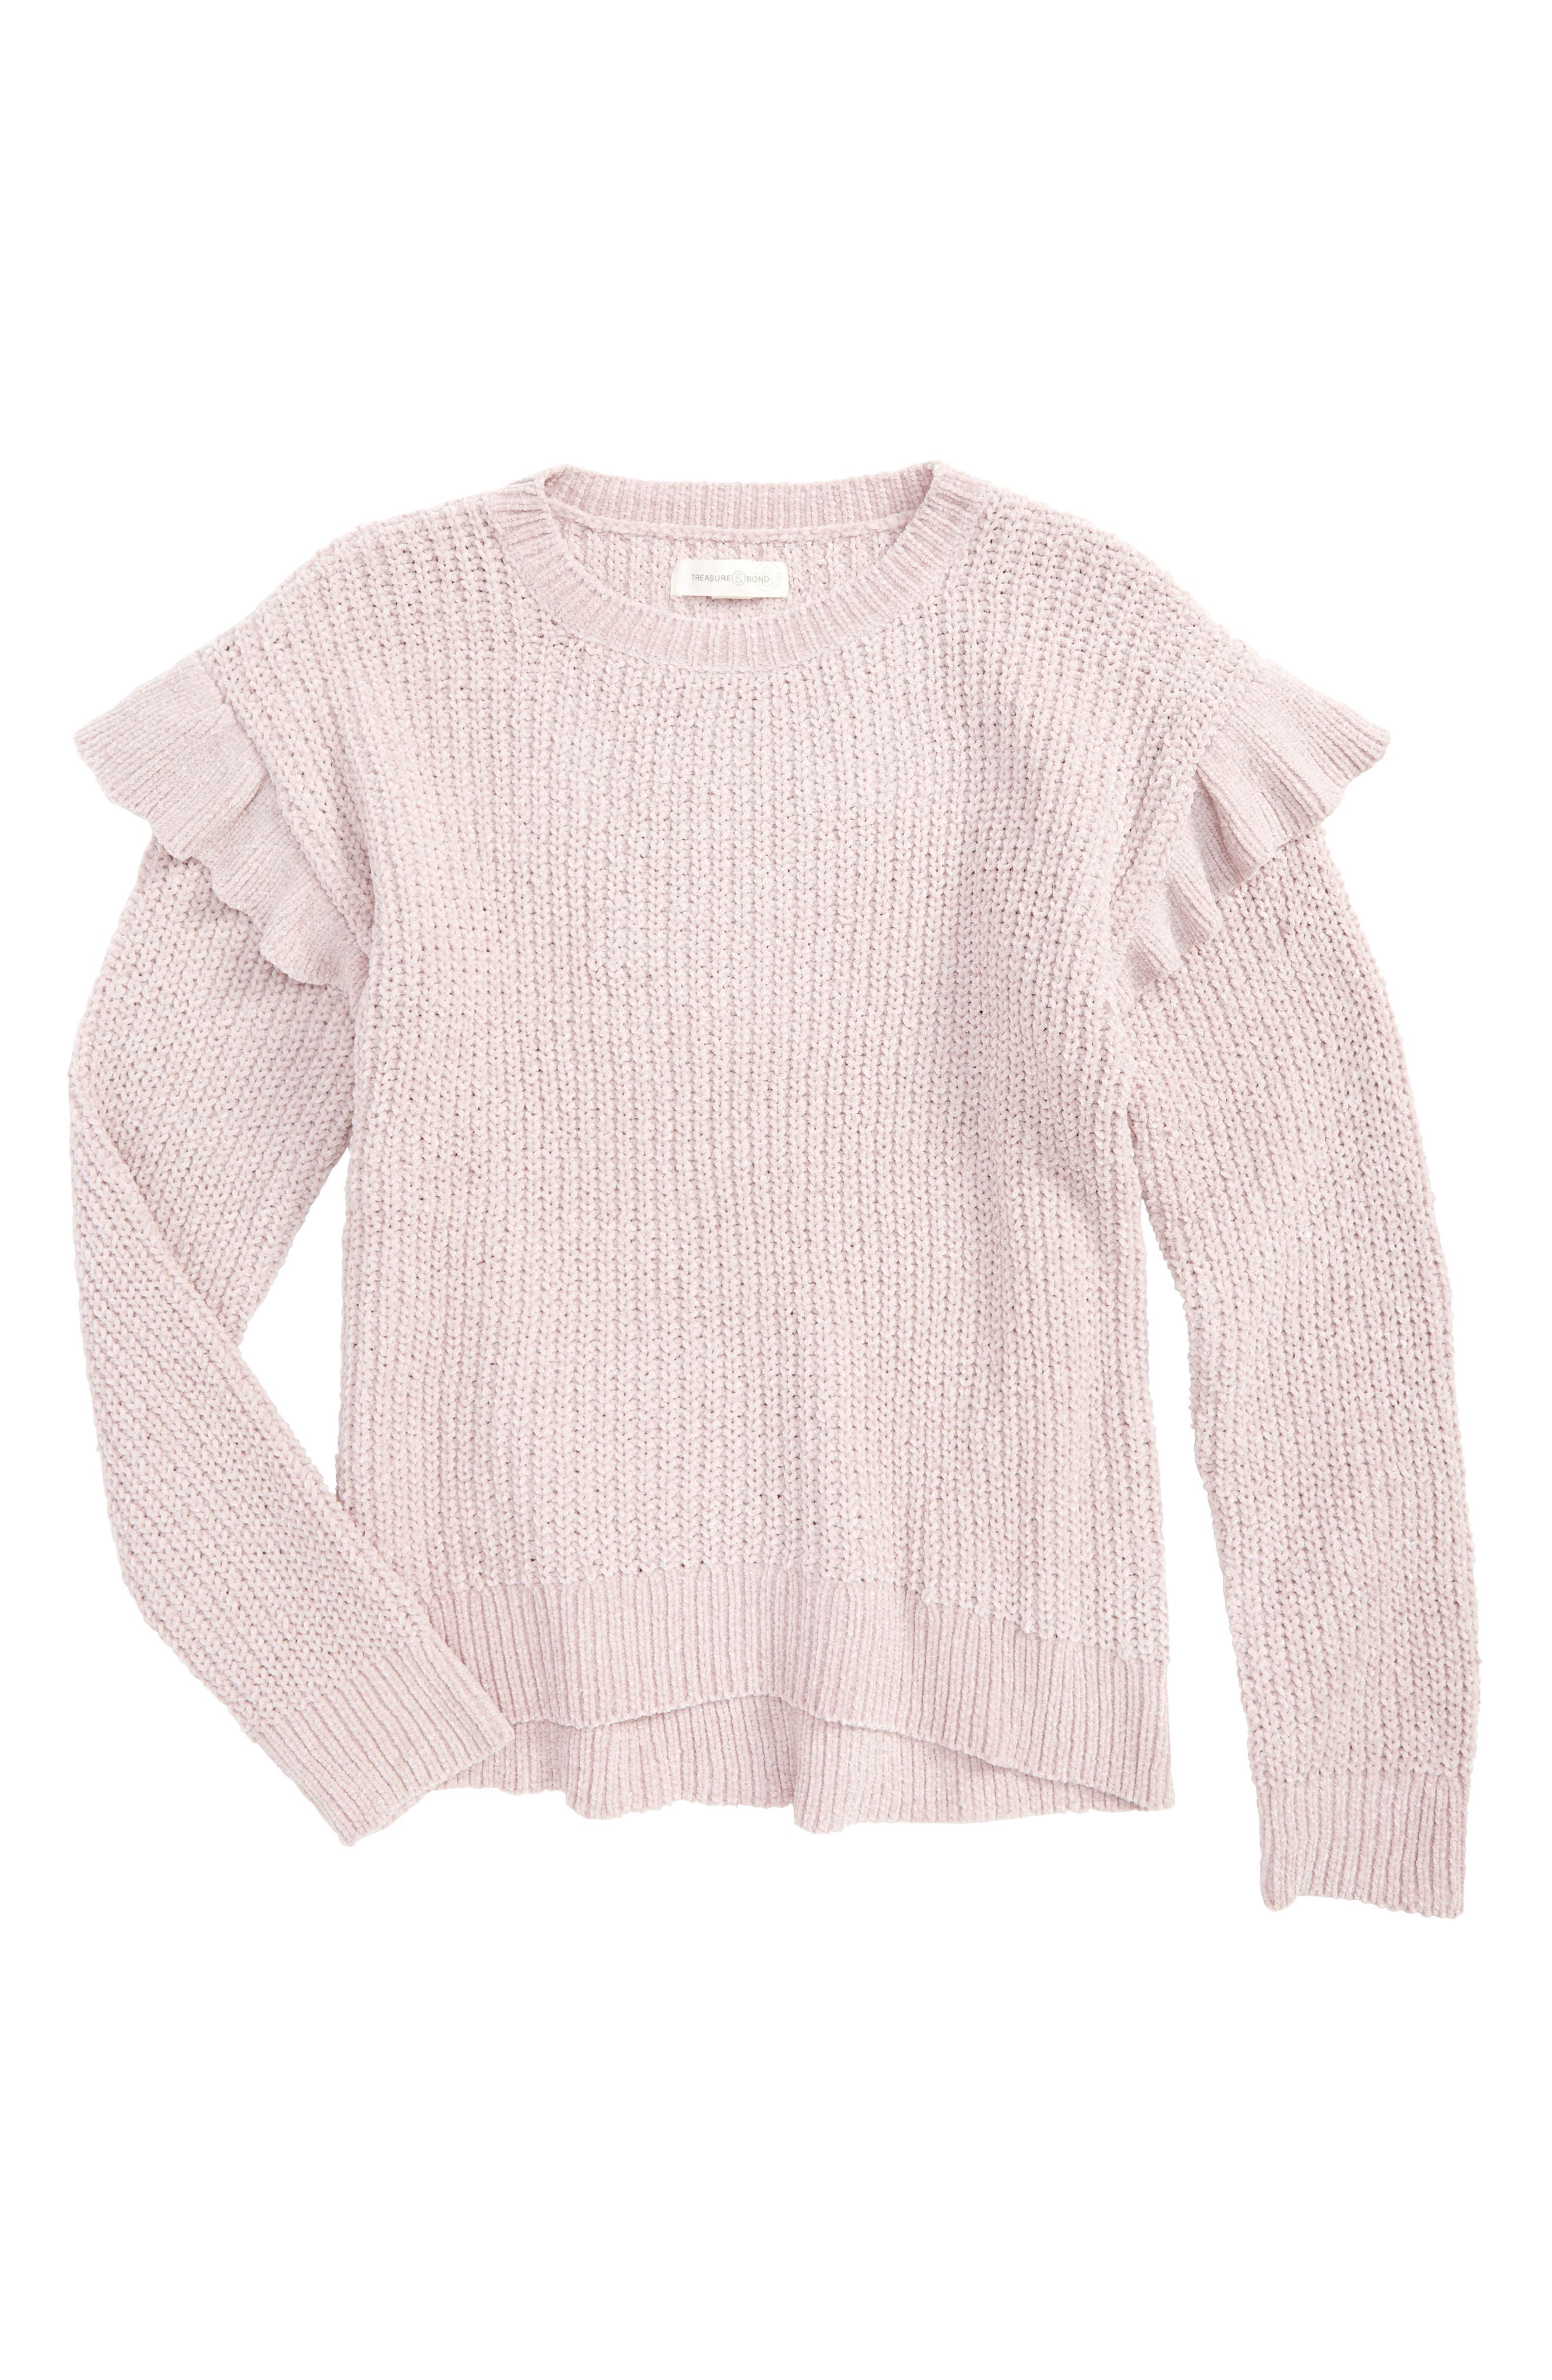 Ruffle Sweater,                         Main,                         color, Pink Antique